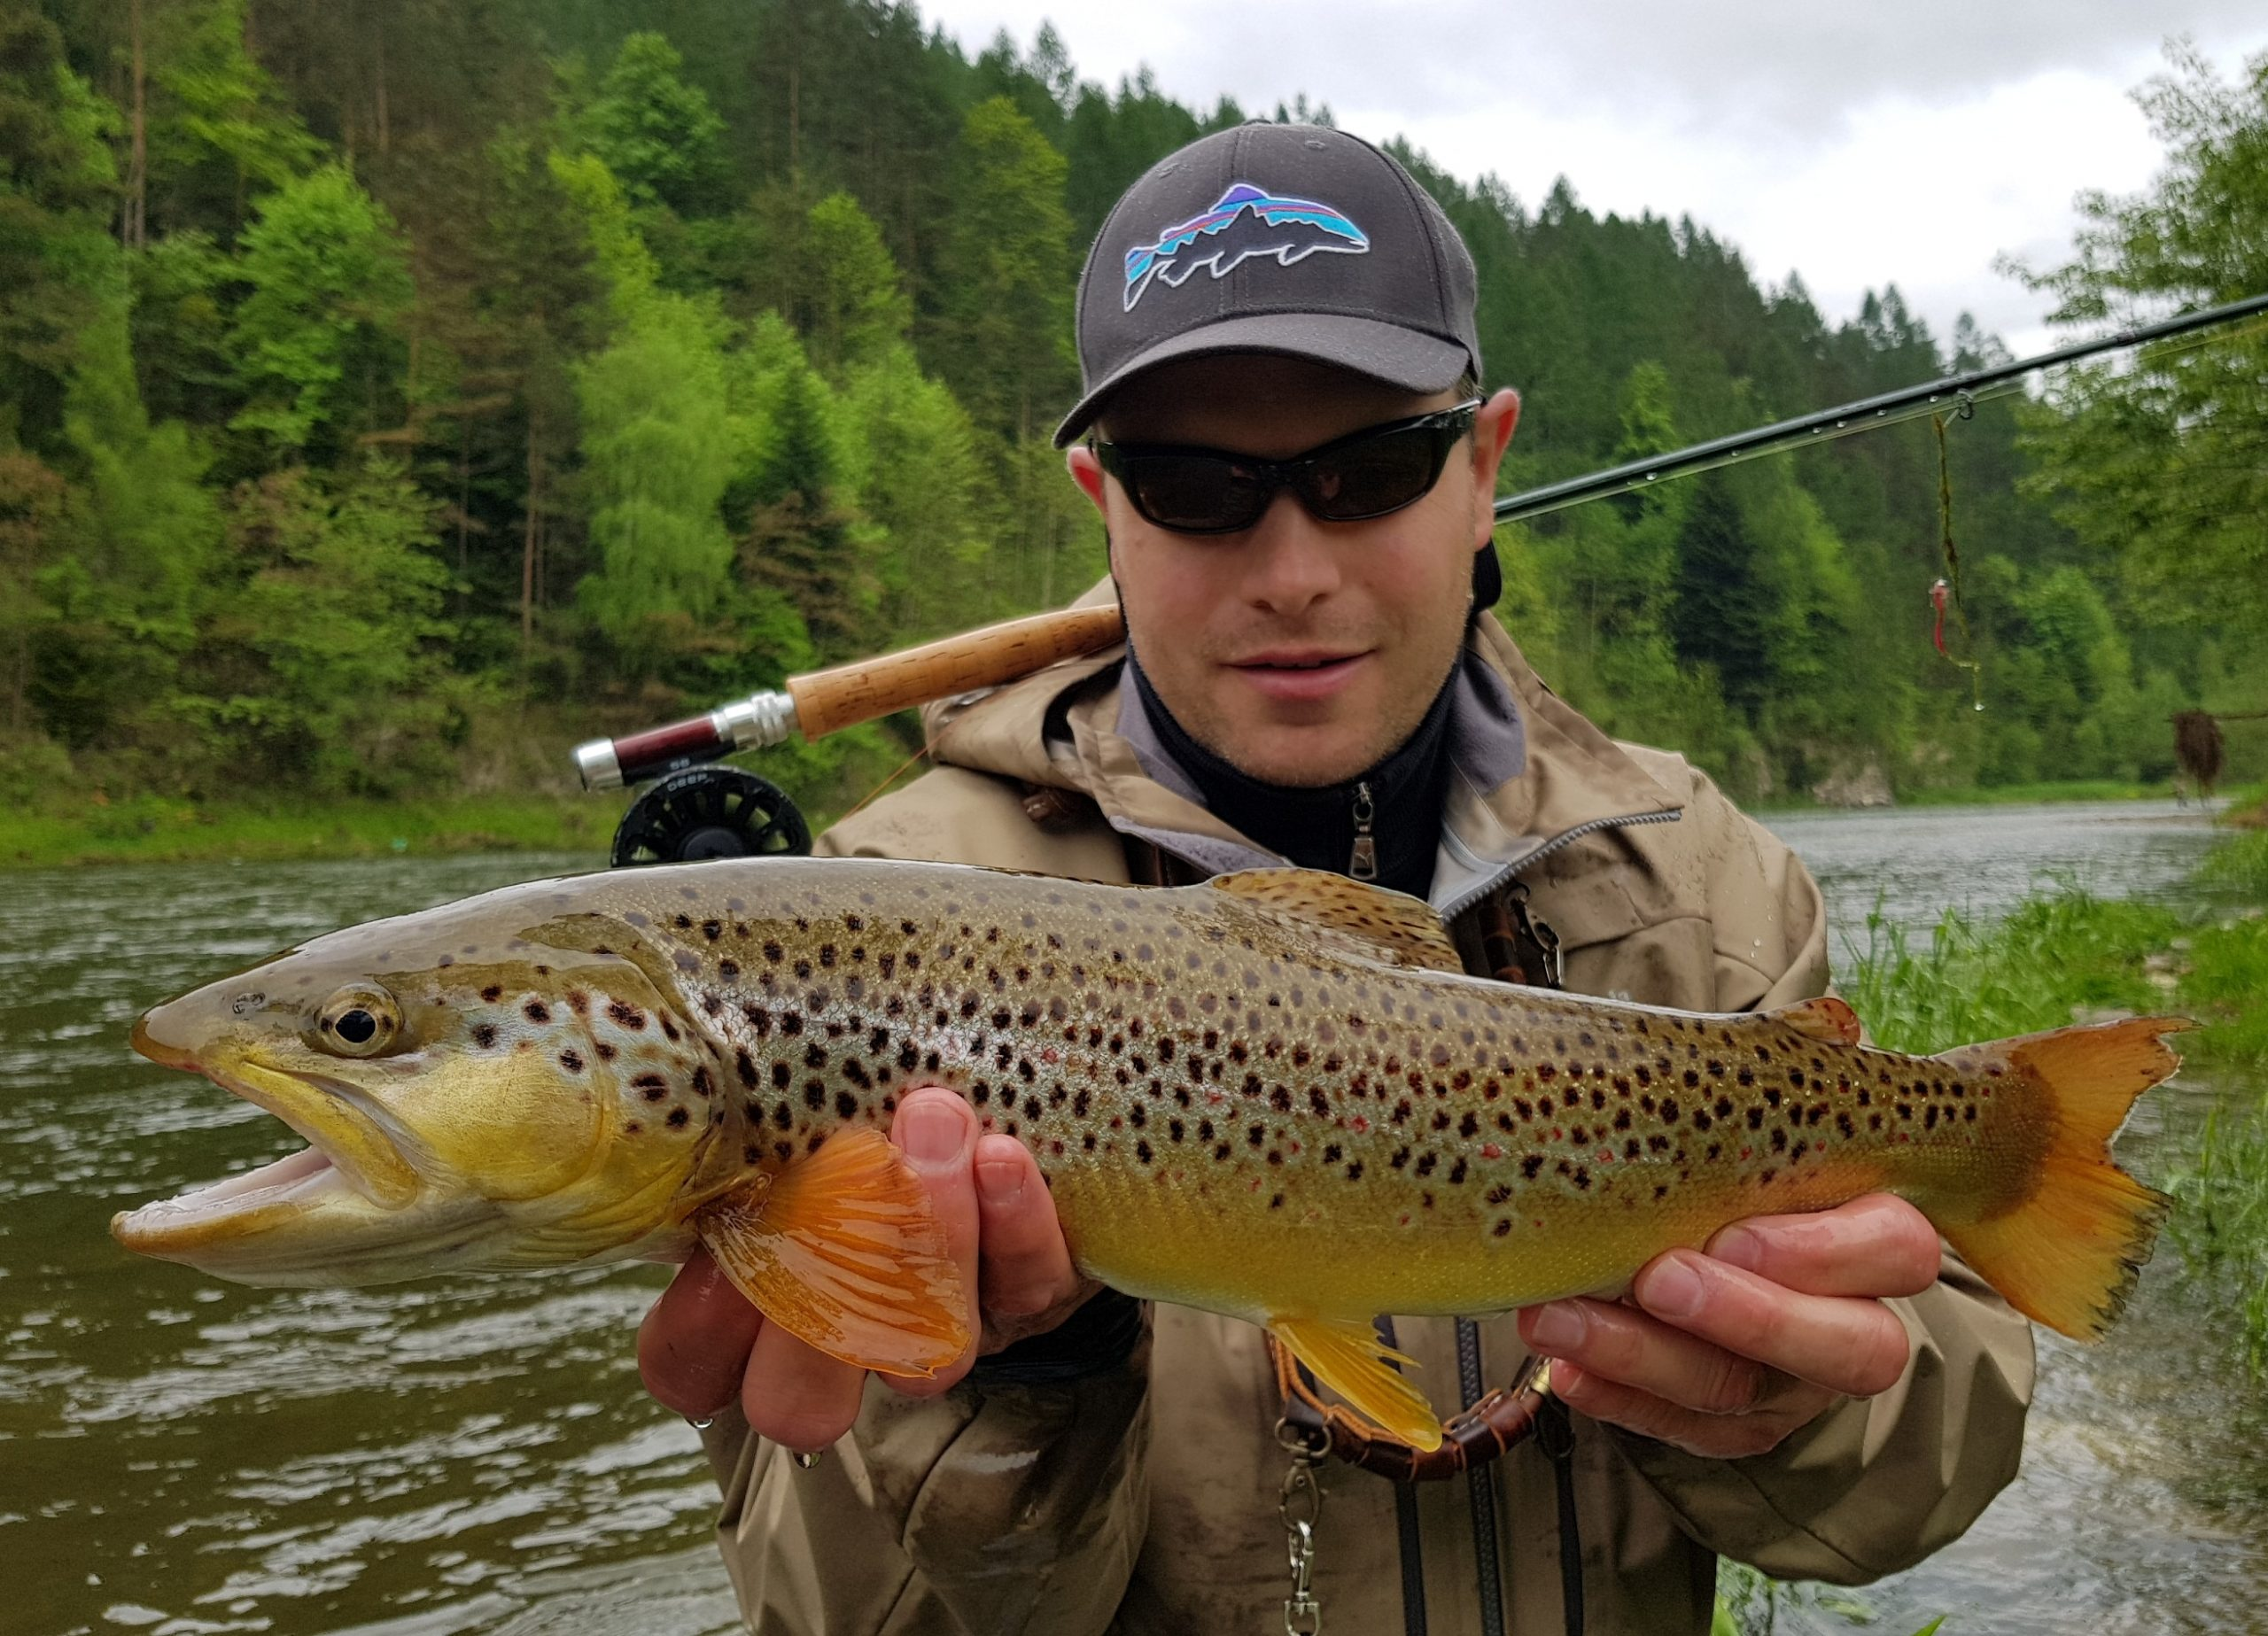 Patagonia hat, squirmy wormie fly and big brown trout